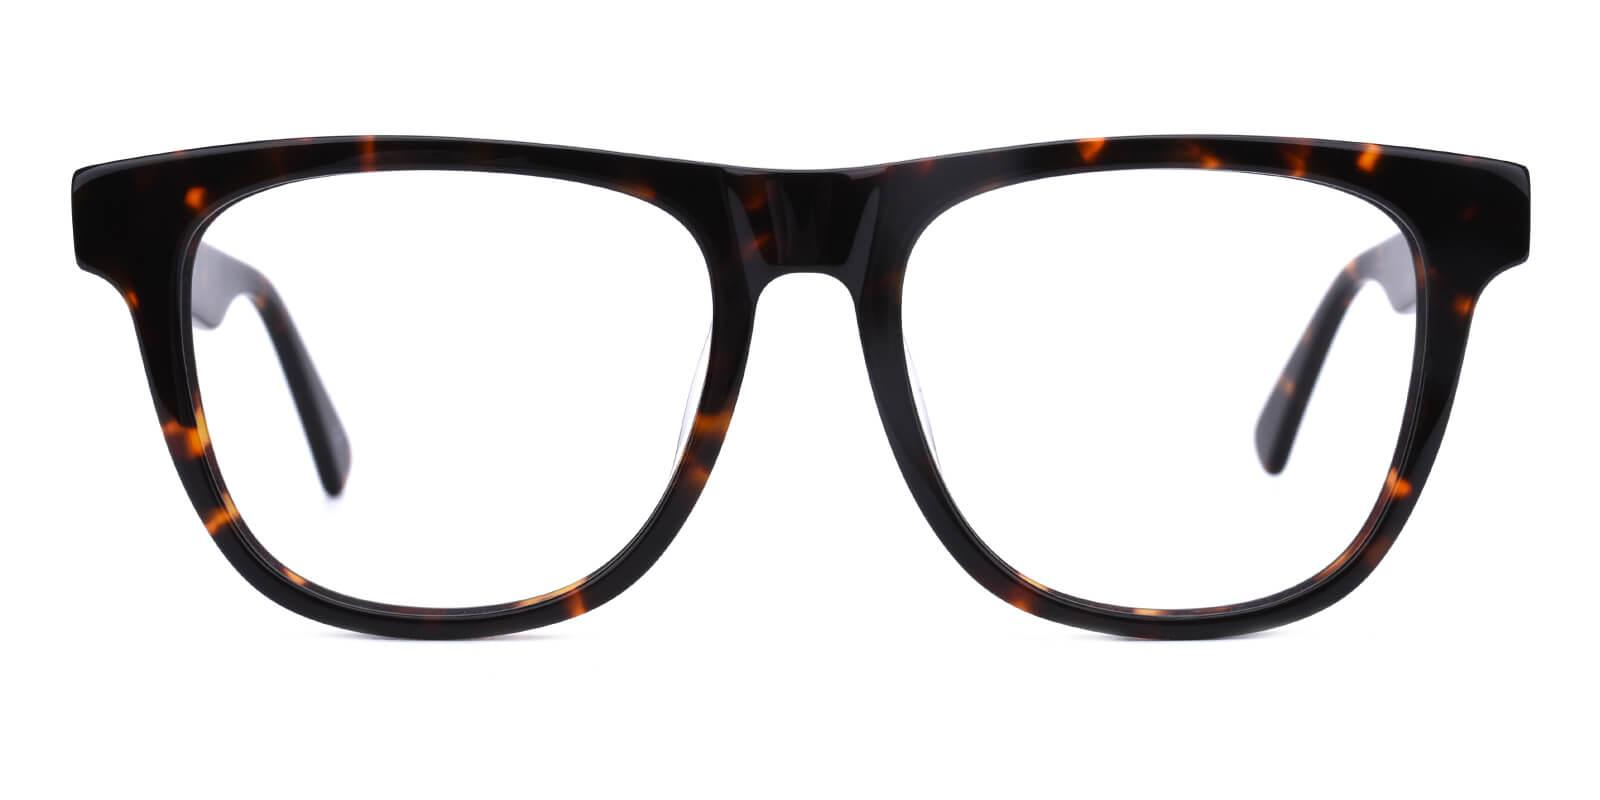 Masque-Tortoise-Square-Acetate-Eyeglasses-additional2